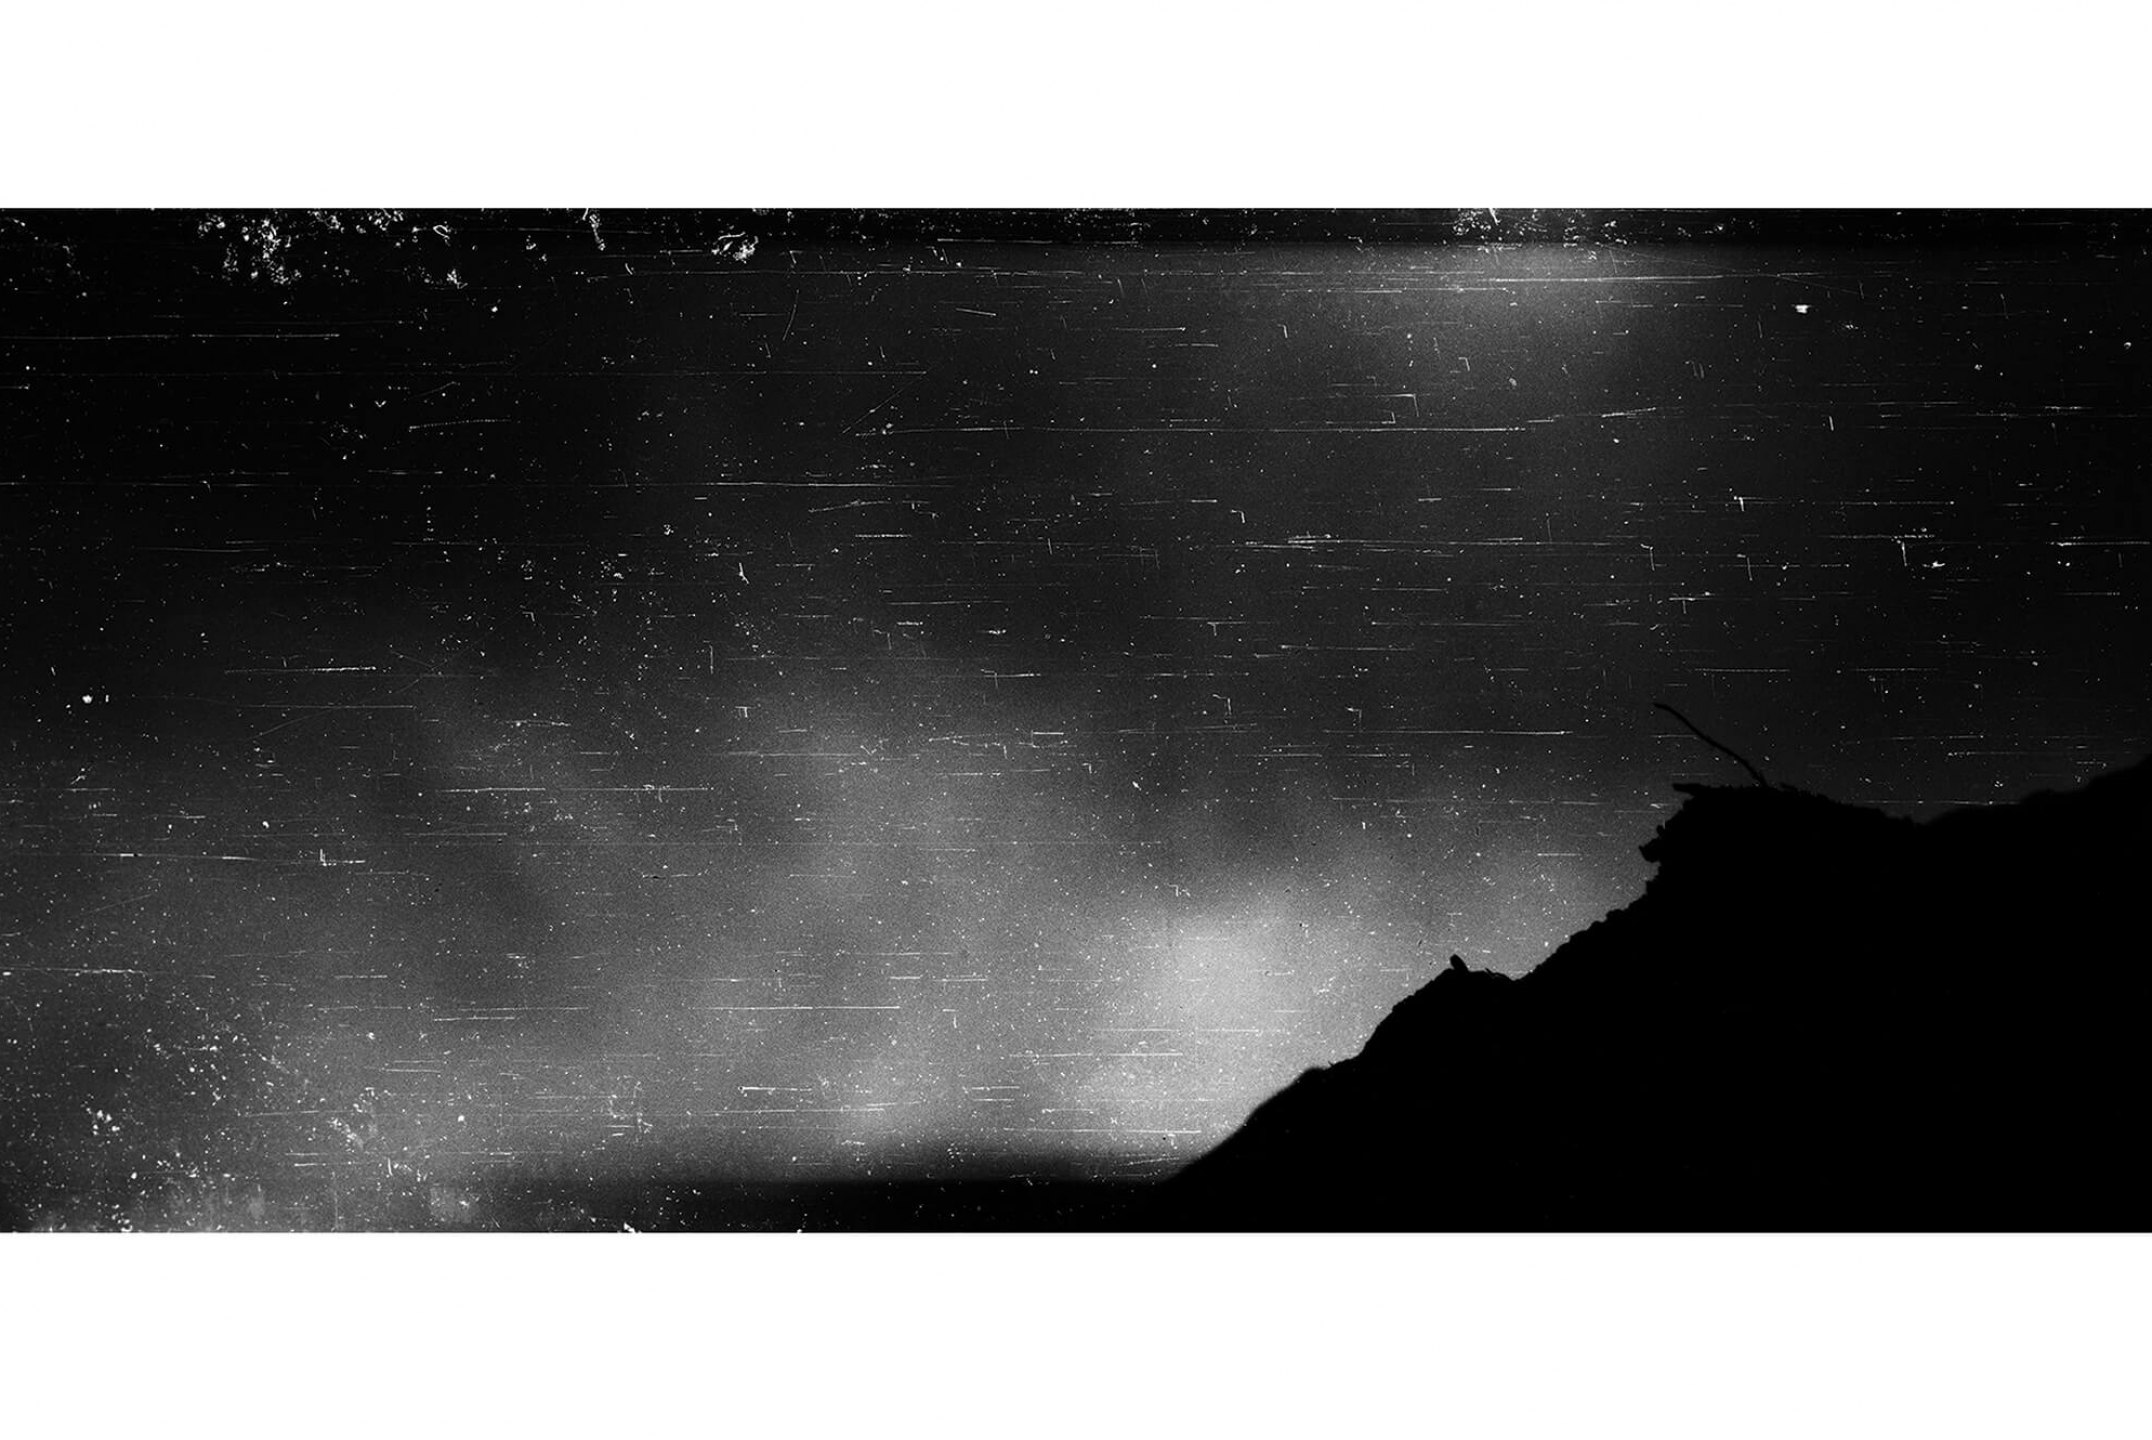 Leticia Ramos, <em>Paisagem #1</em>, 2014, photography from microfilm, 74 × 200 cm - Mendes Wood DM